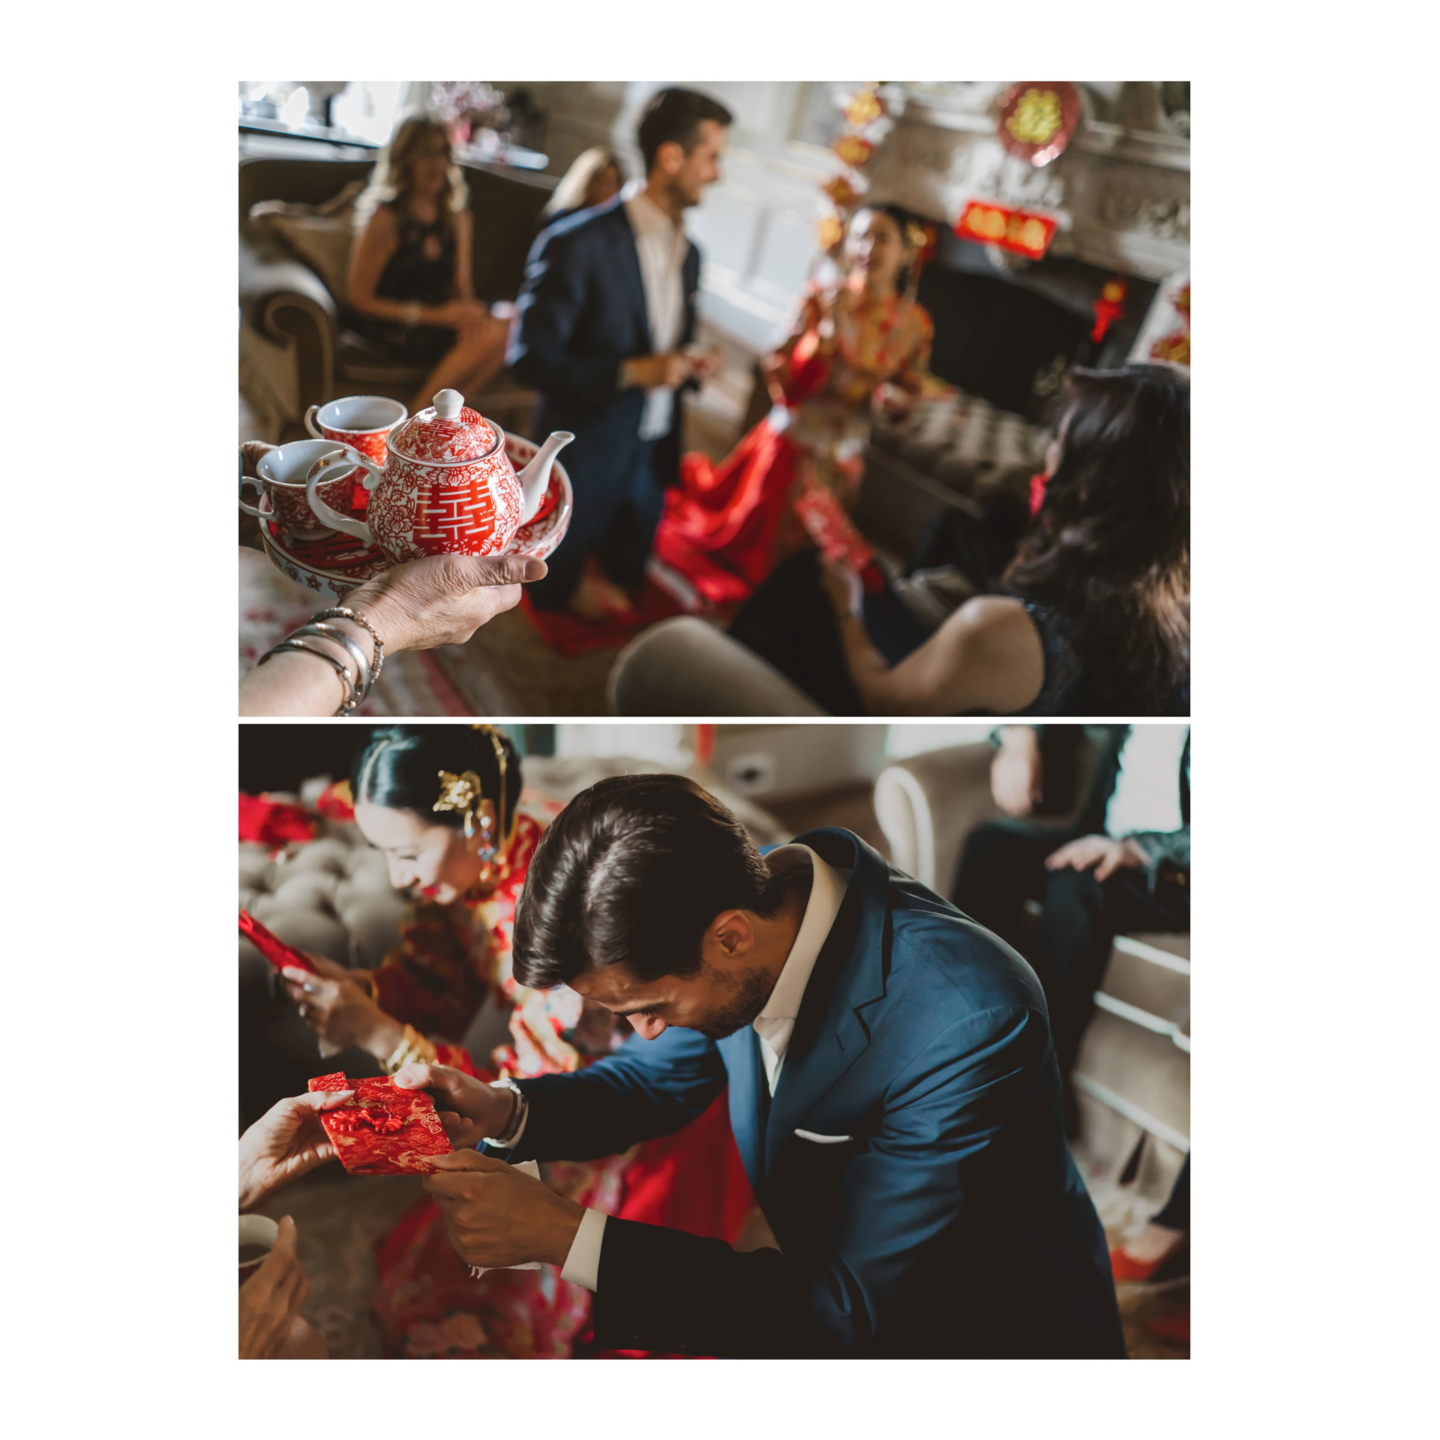 Luxury wedding in Florence (with a chinese tea ceremony) :: Luxury wedding in Florence (with a chinese tea ceremony) :: Luxury wedding photography - 2 :: Luxury wedding in Florence (with a chinese tea ceremony)